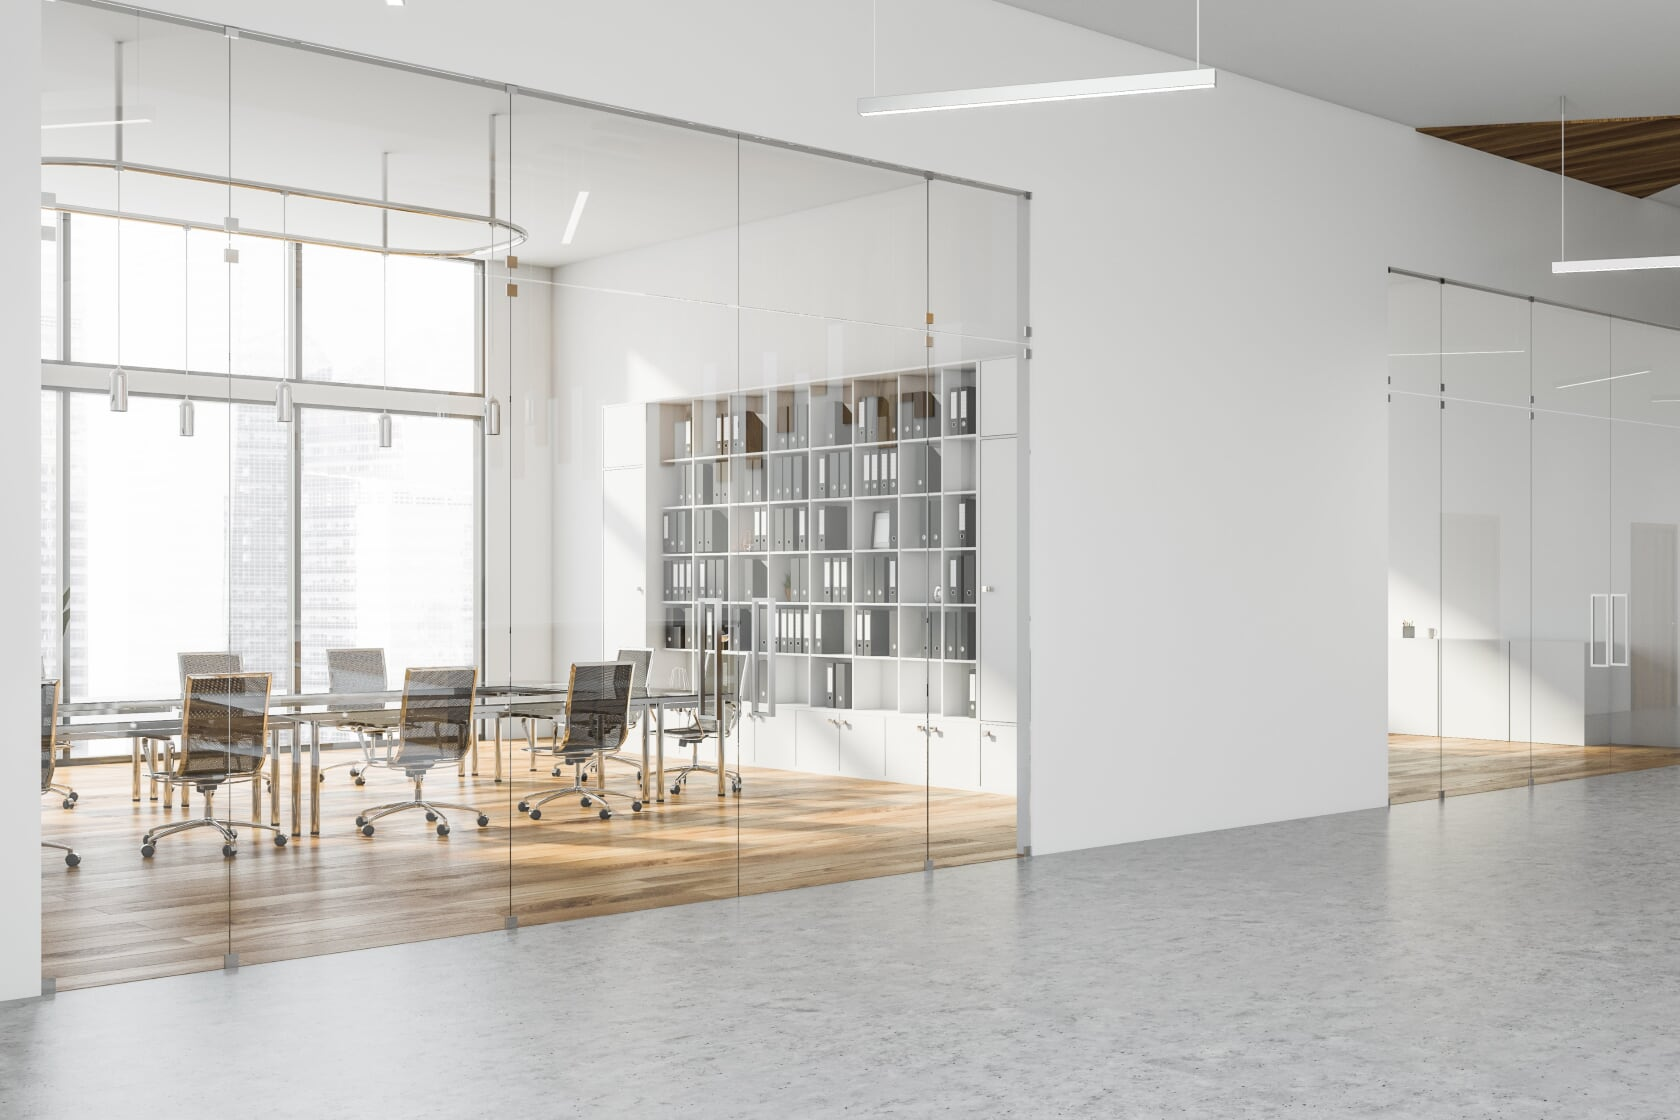 bigstock-White-Meeting-Room-With-Bookca-311050171